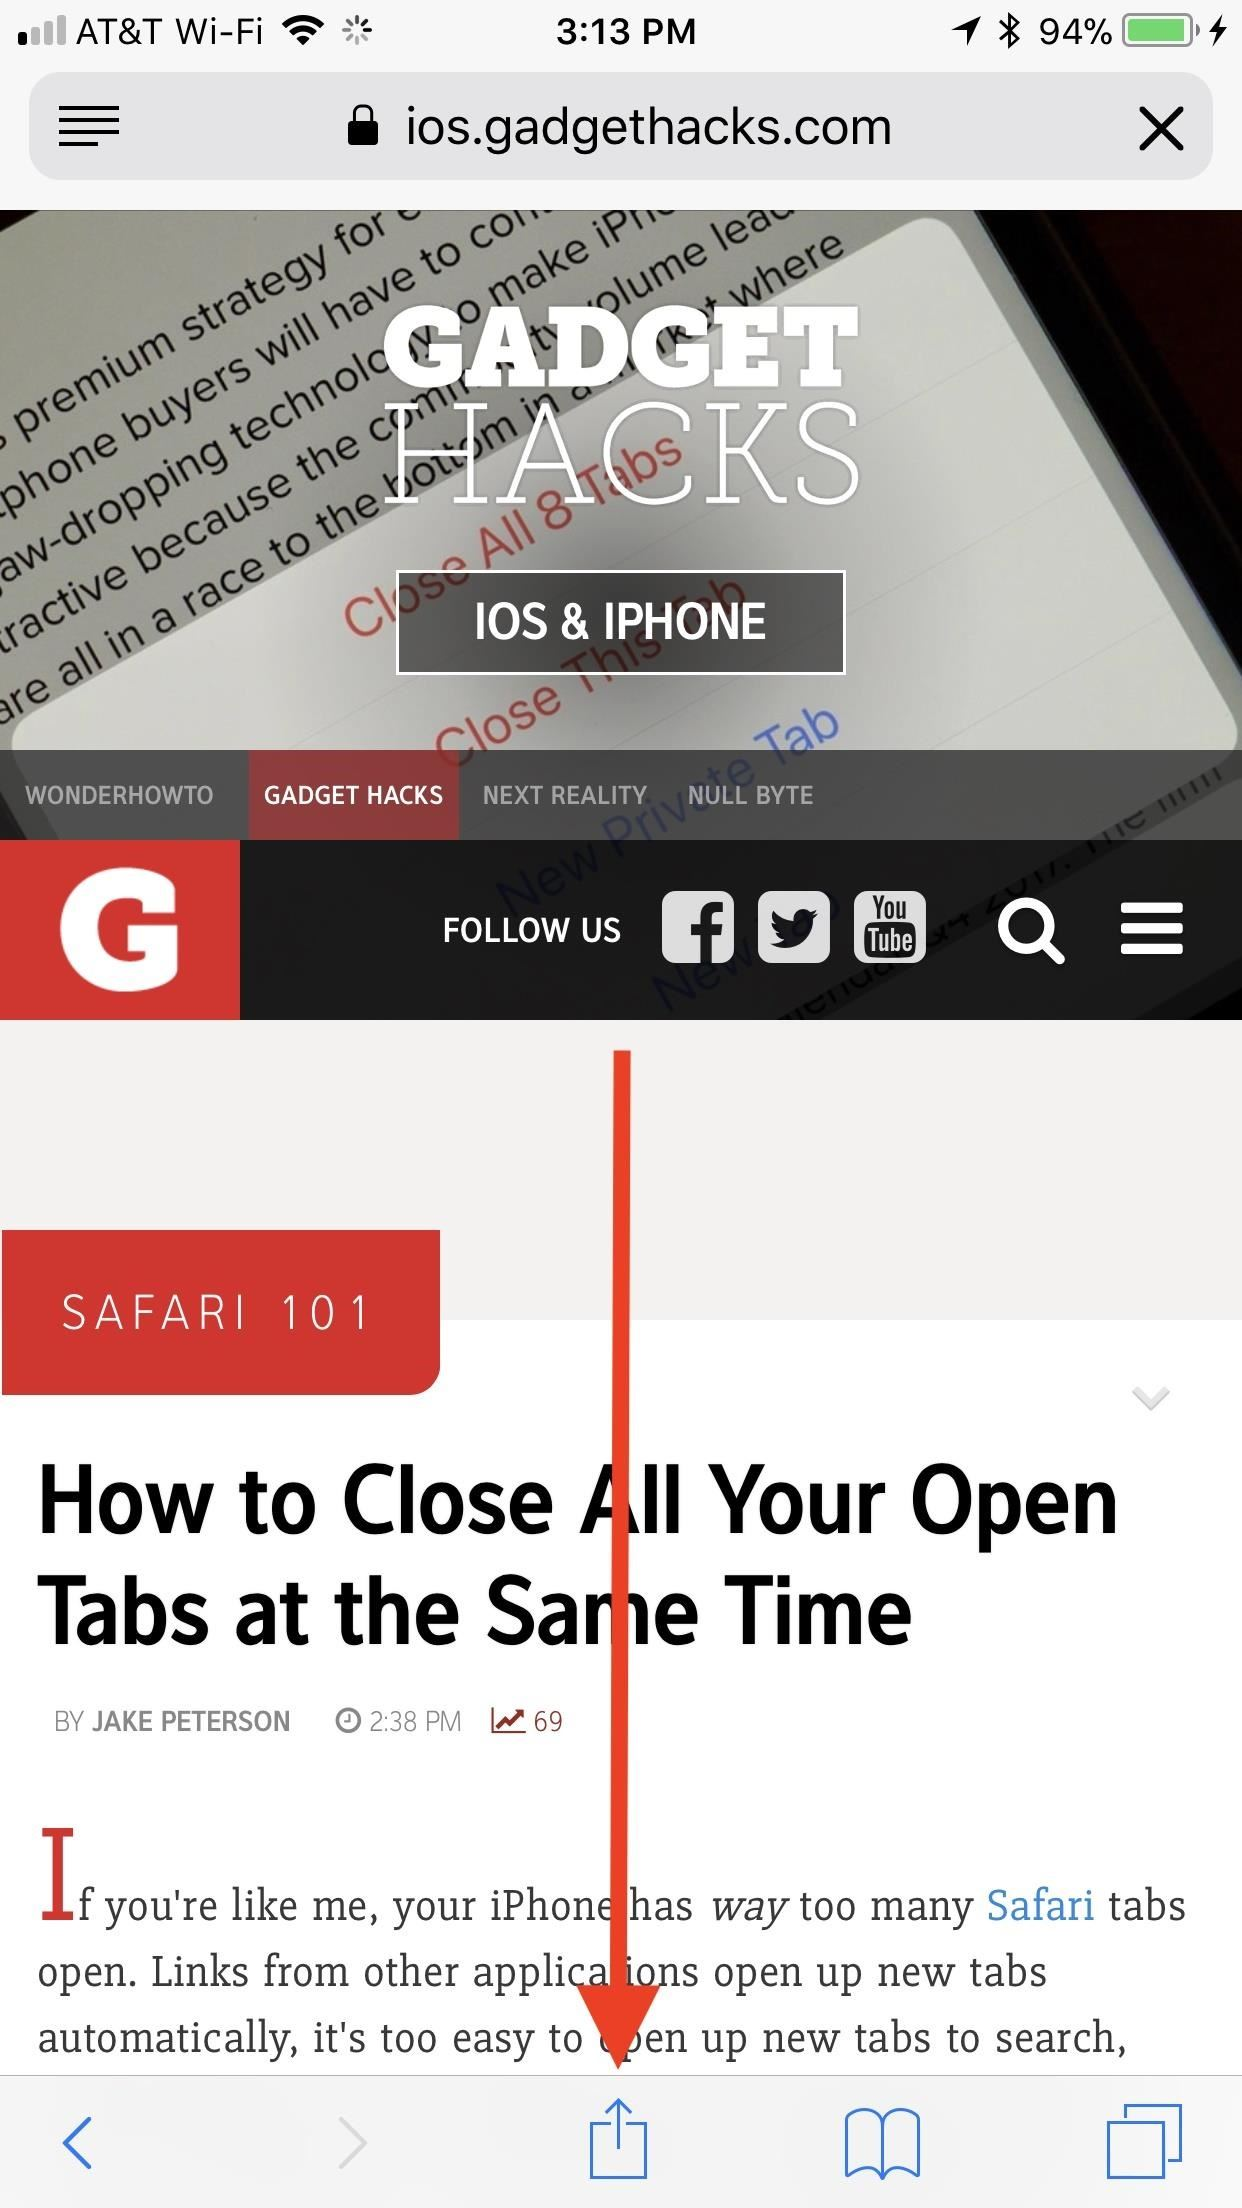 Safari 101: How to Save a Website or Webpage to Your Home Screen for Instant Access